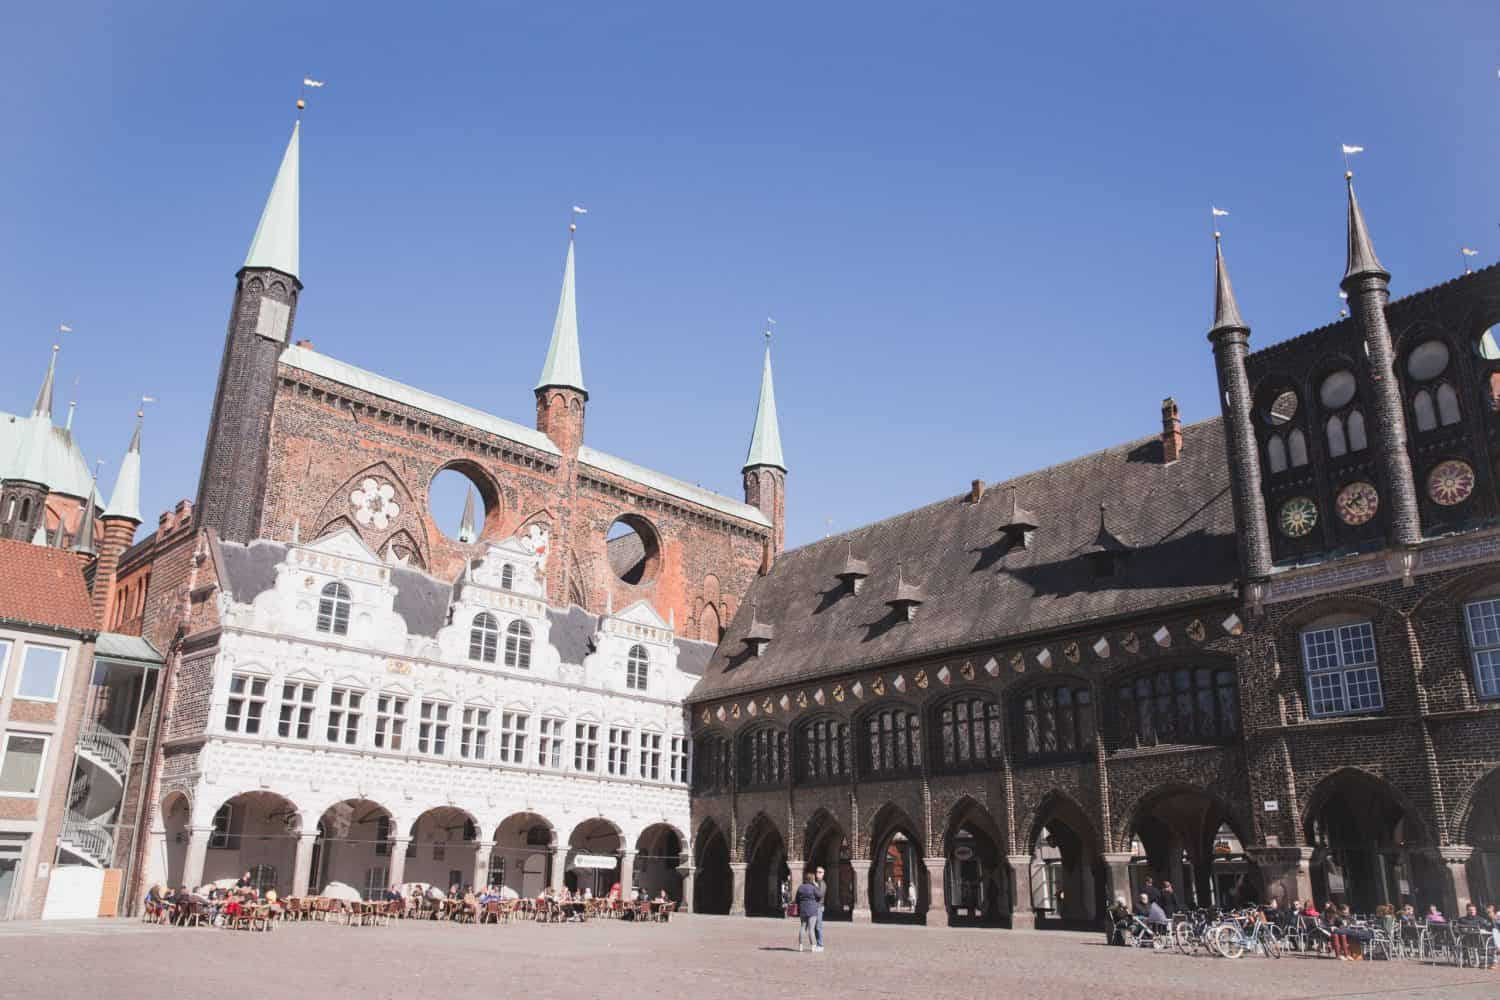 Lübeck Rathaus, or Town Hall, is a beautiful historic building in the center of Lübeck.